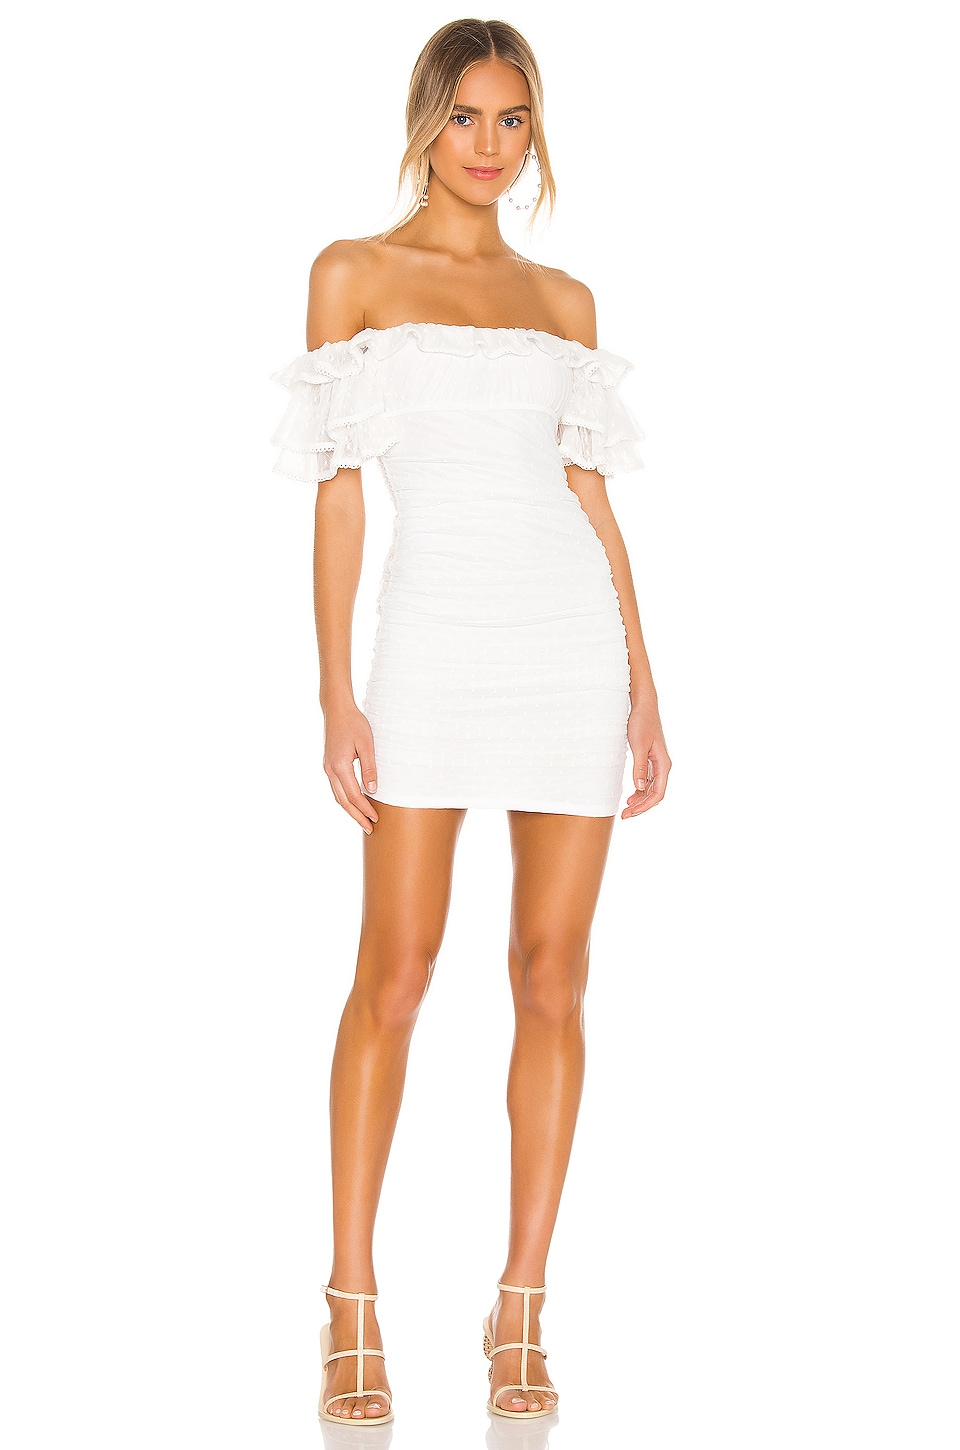 Eva Mini Dress             Camila Coelho                                                                                                       CA$ 306.13 15